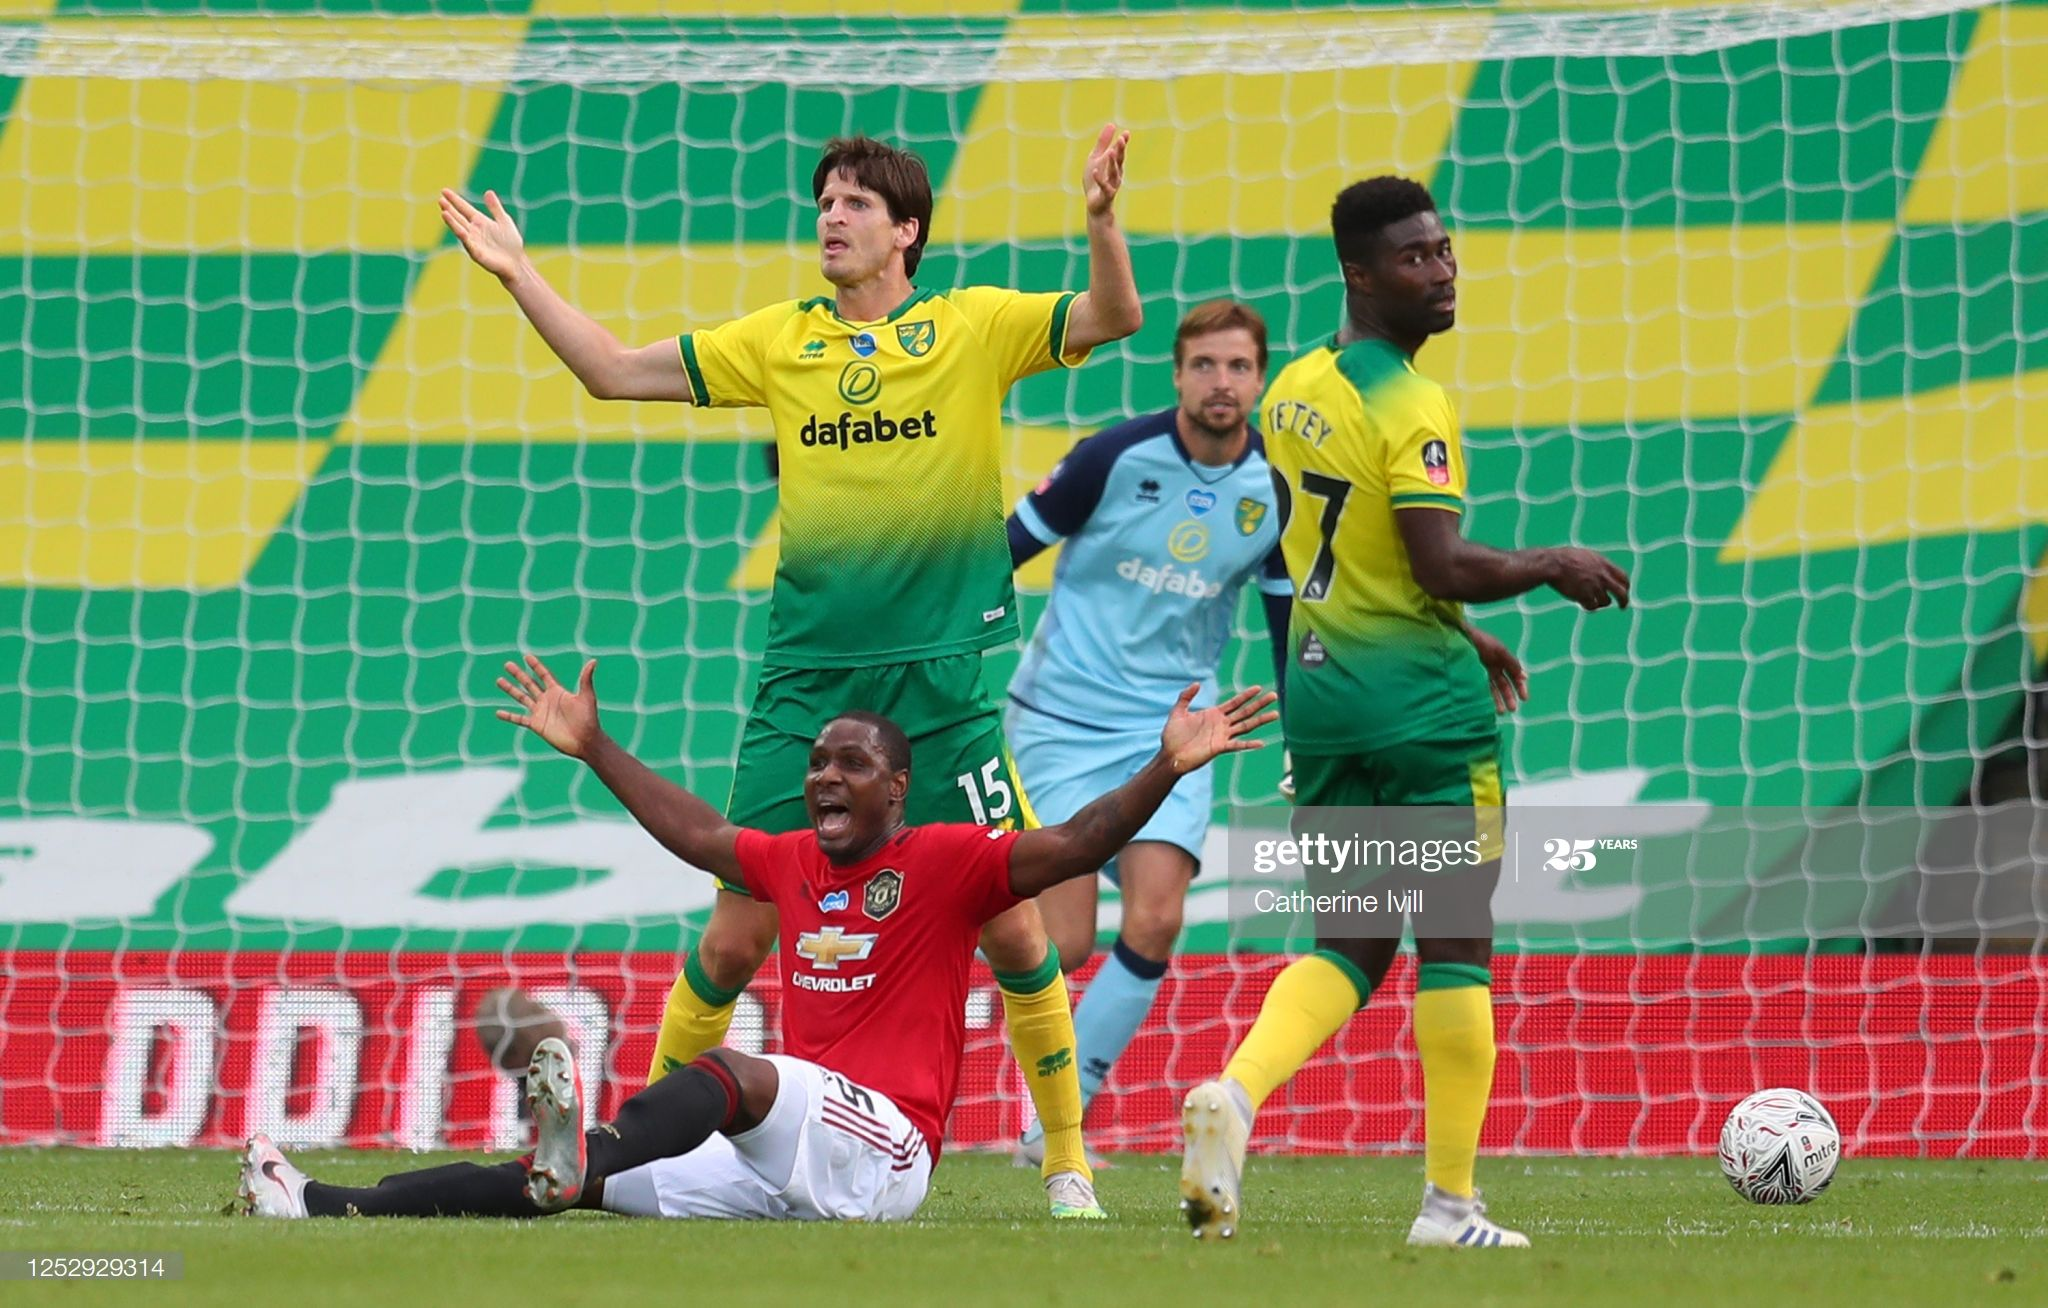 Odion Ighalo Of Manchester United Appeals To The Referee After A Foul In 2020 Manchester United Manchester The Unit